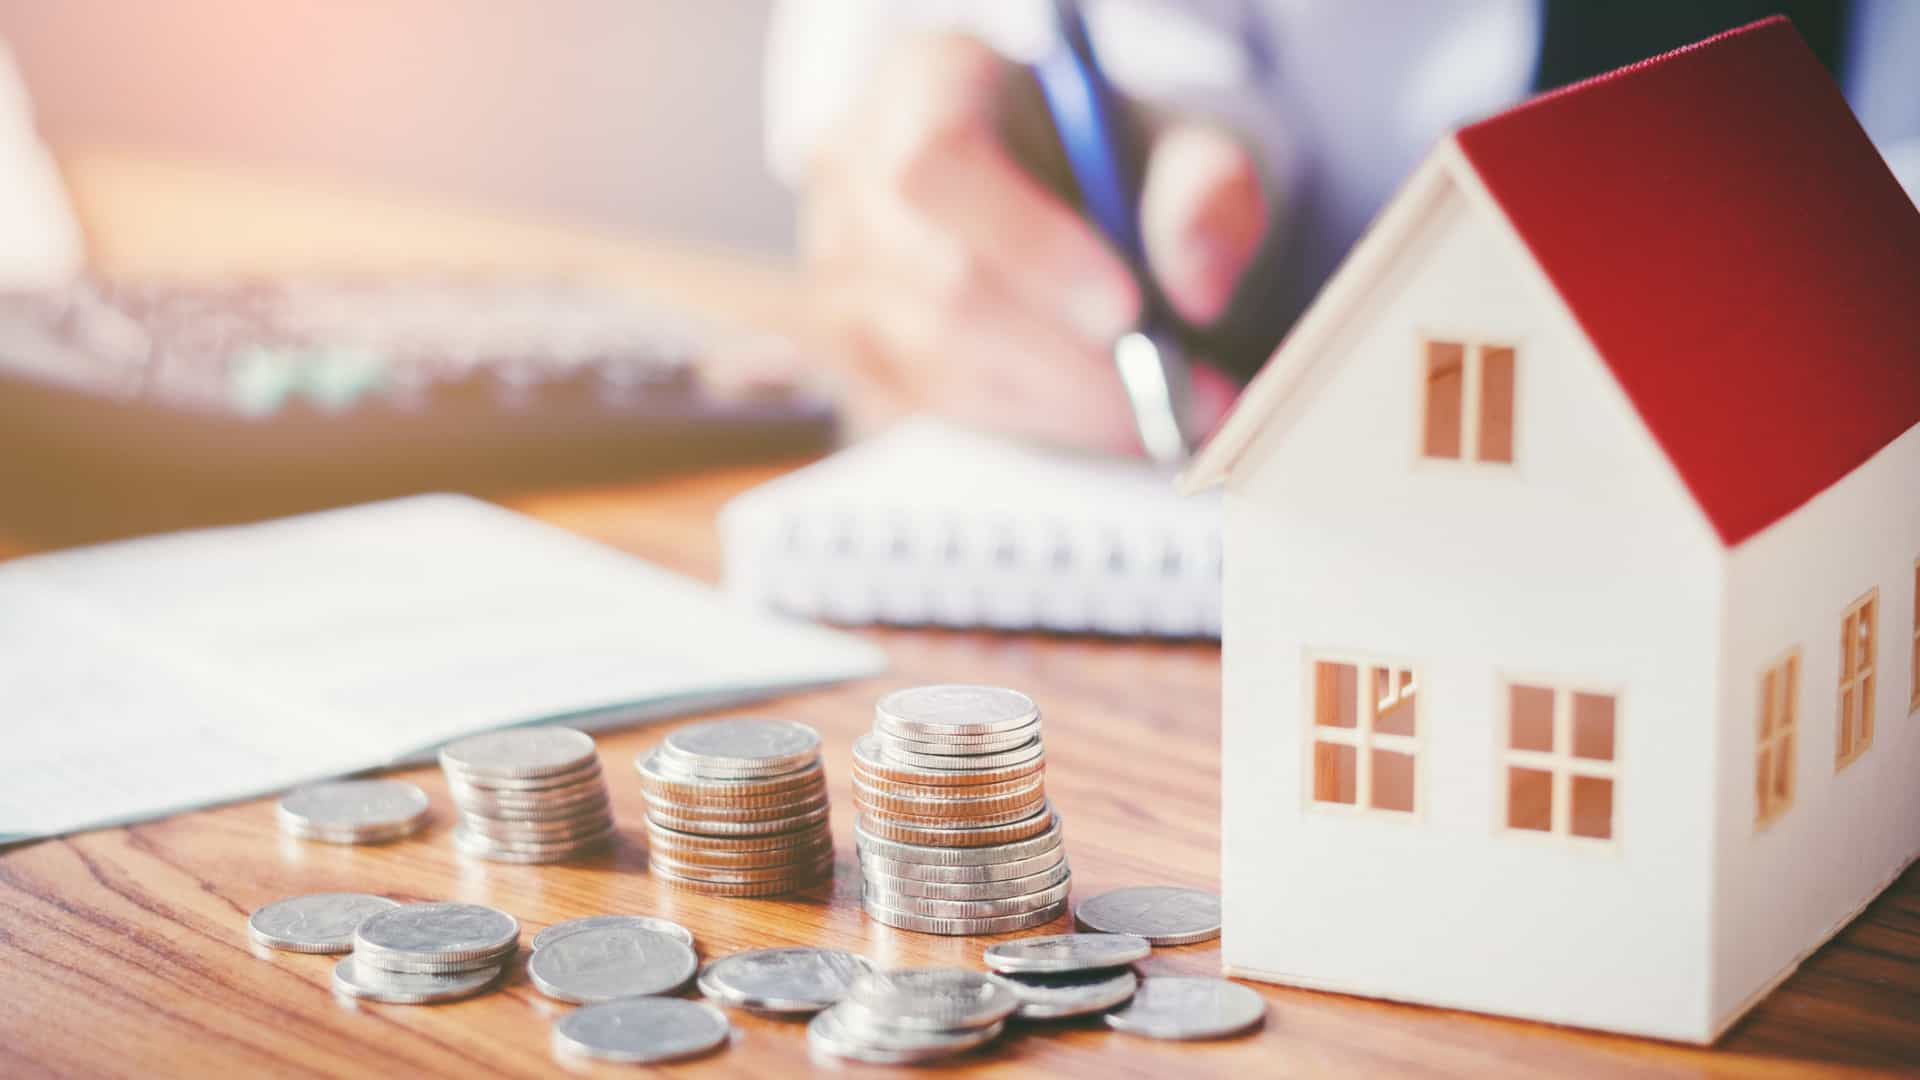 How much does the deed of property cost in 2021?